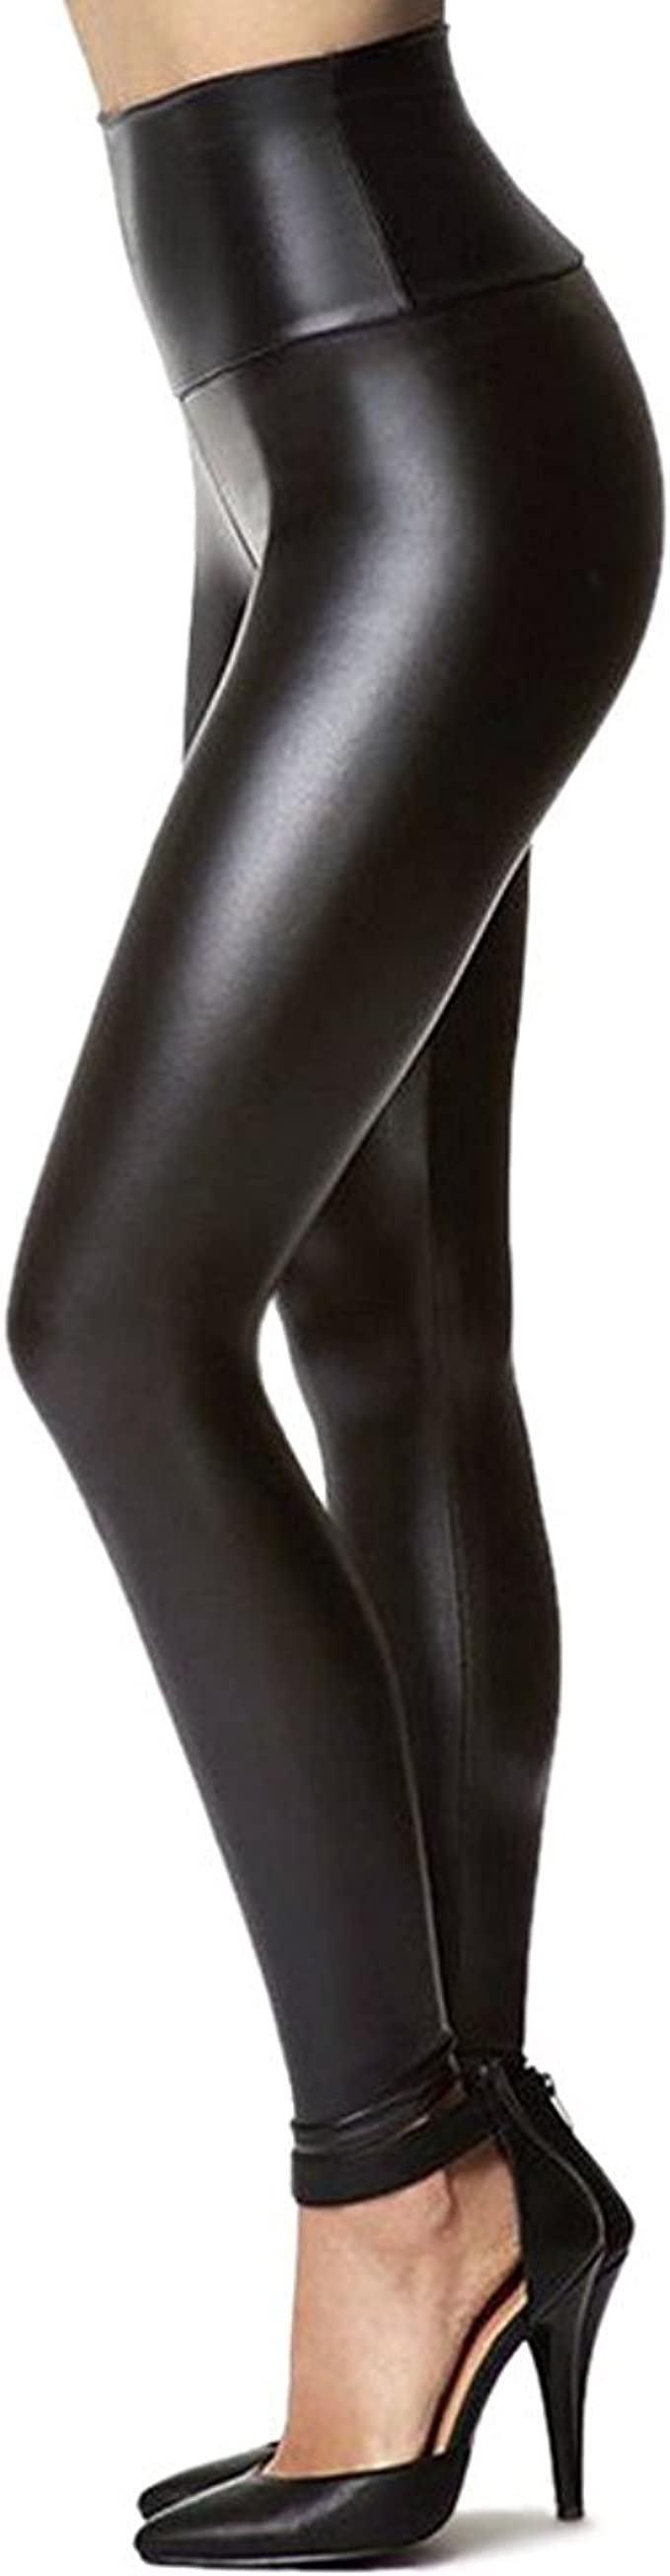 Tagoo Faux Leather Leggings for Women High Waisted Pleather Pants